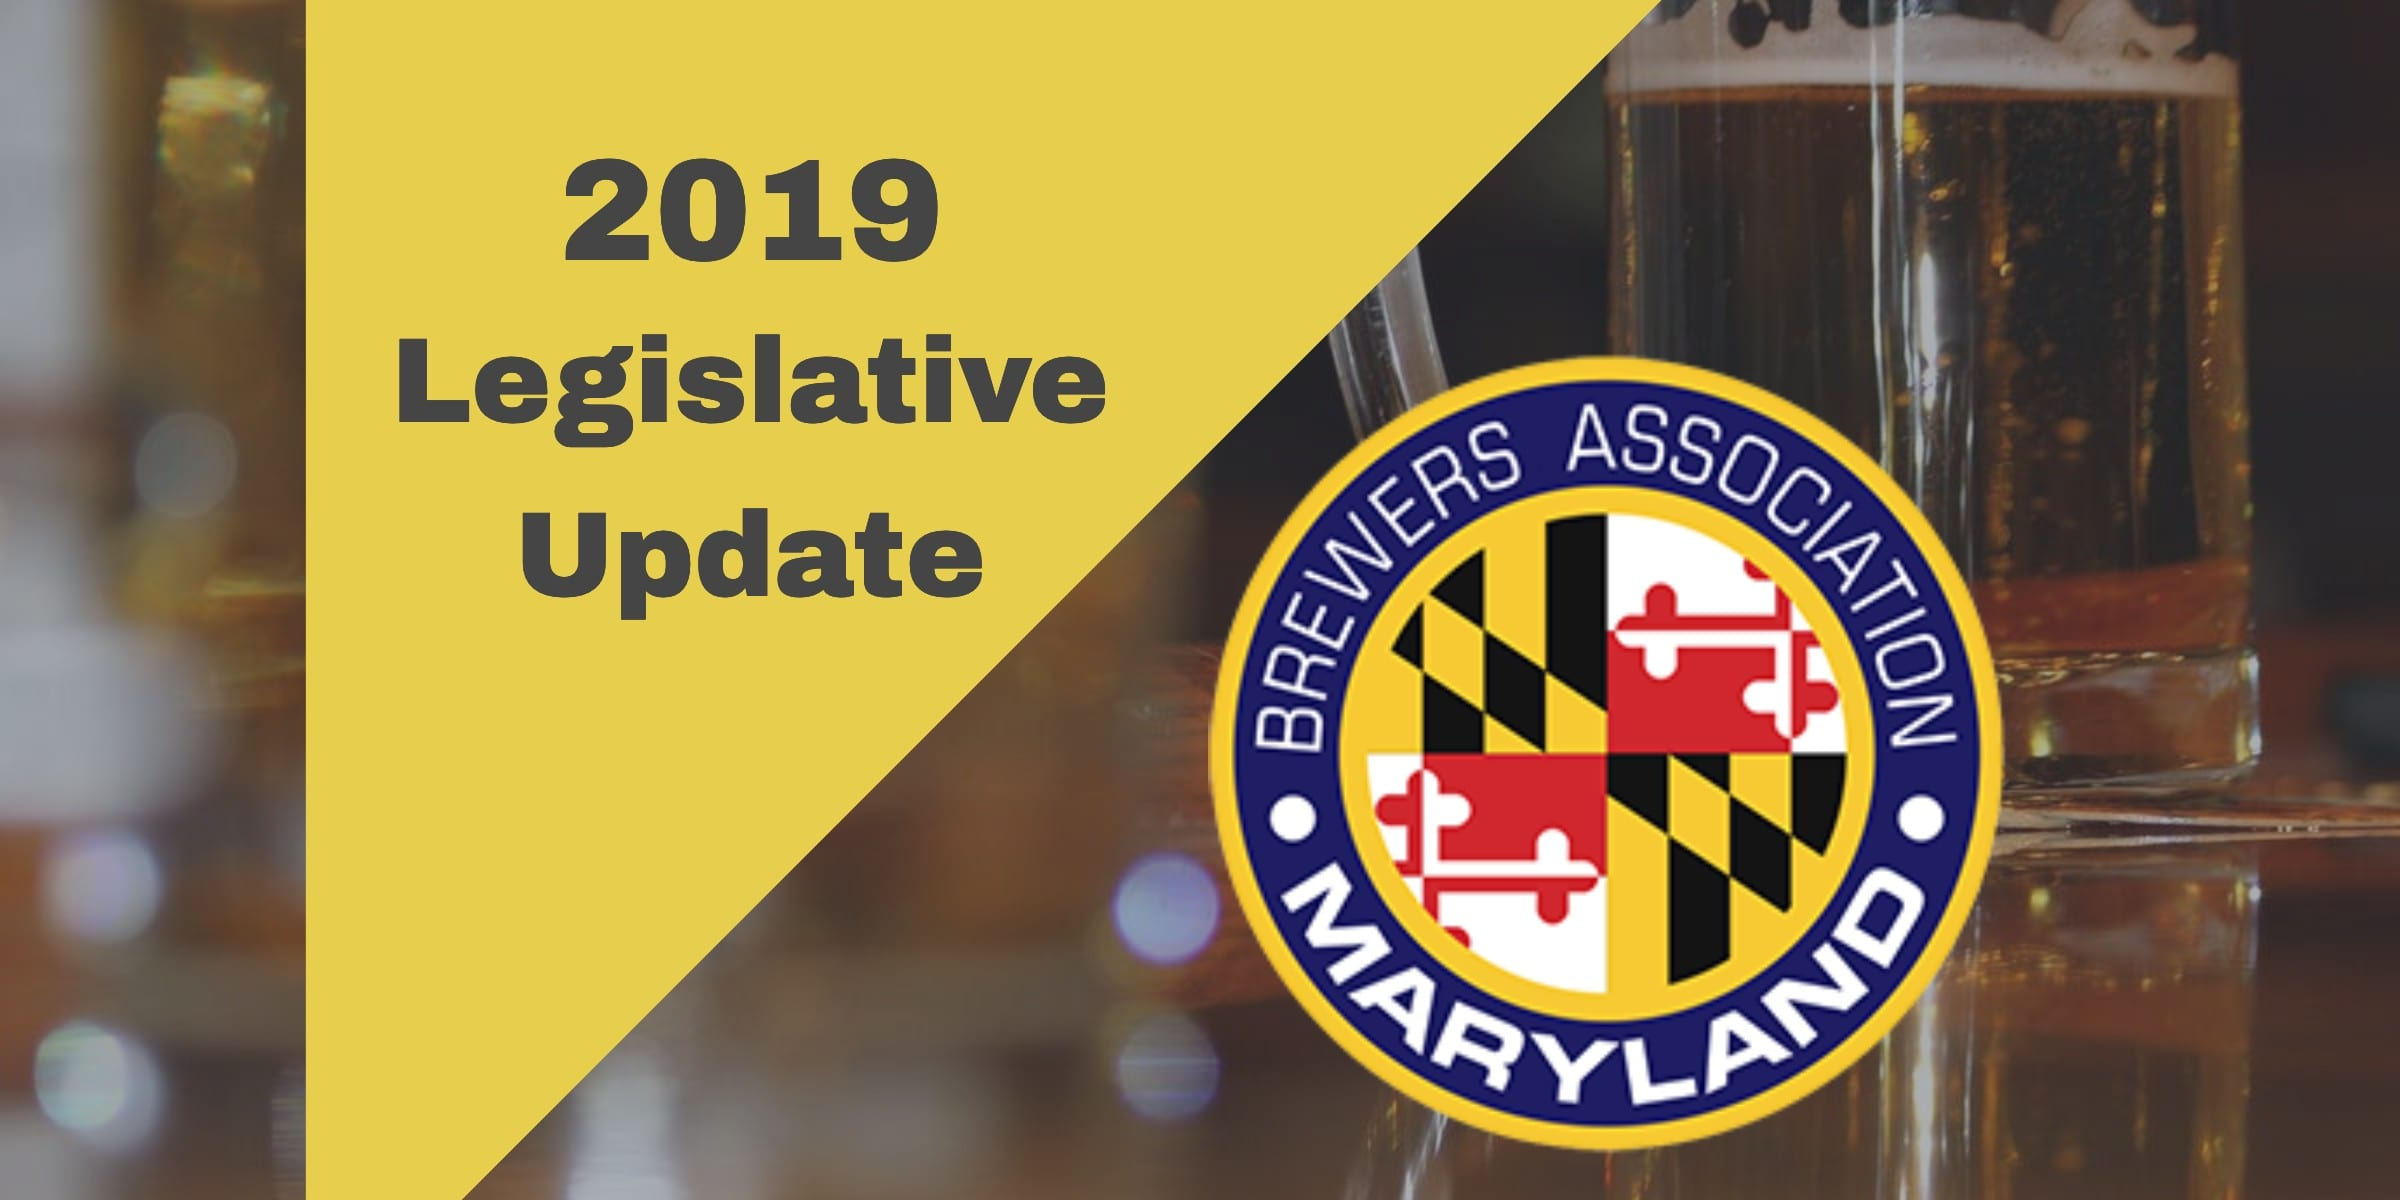 Maryland Breweries in 2019